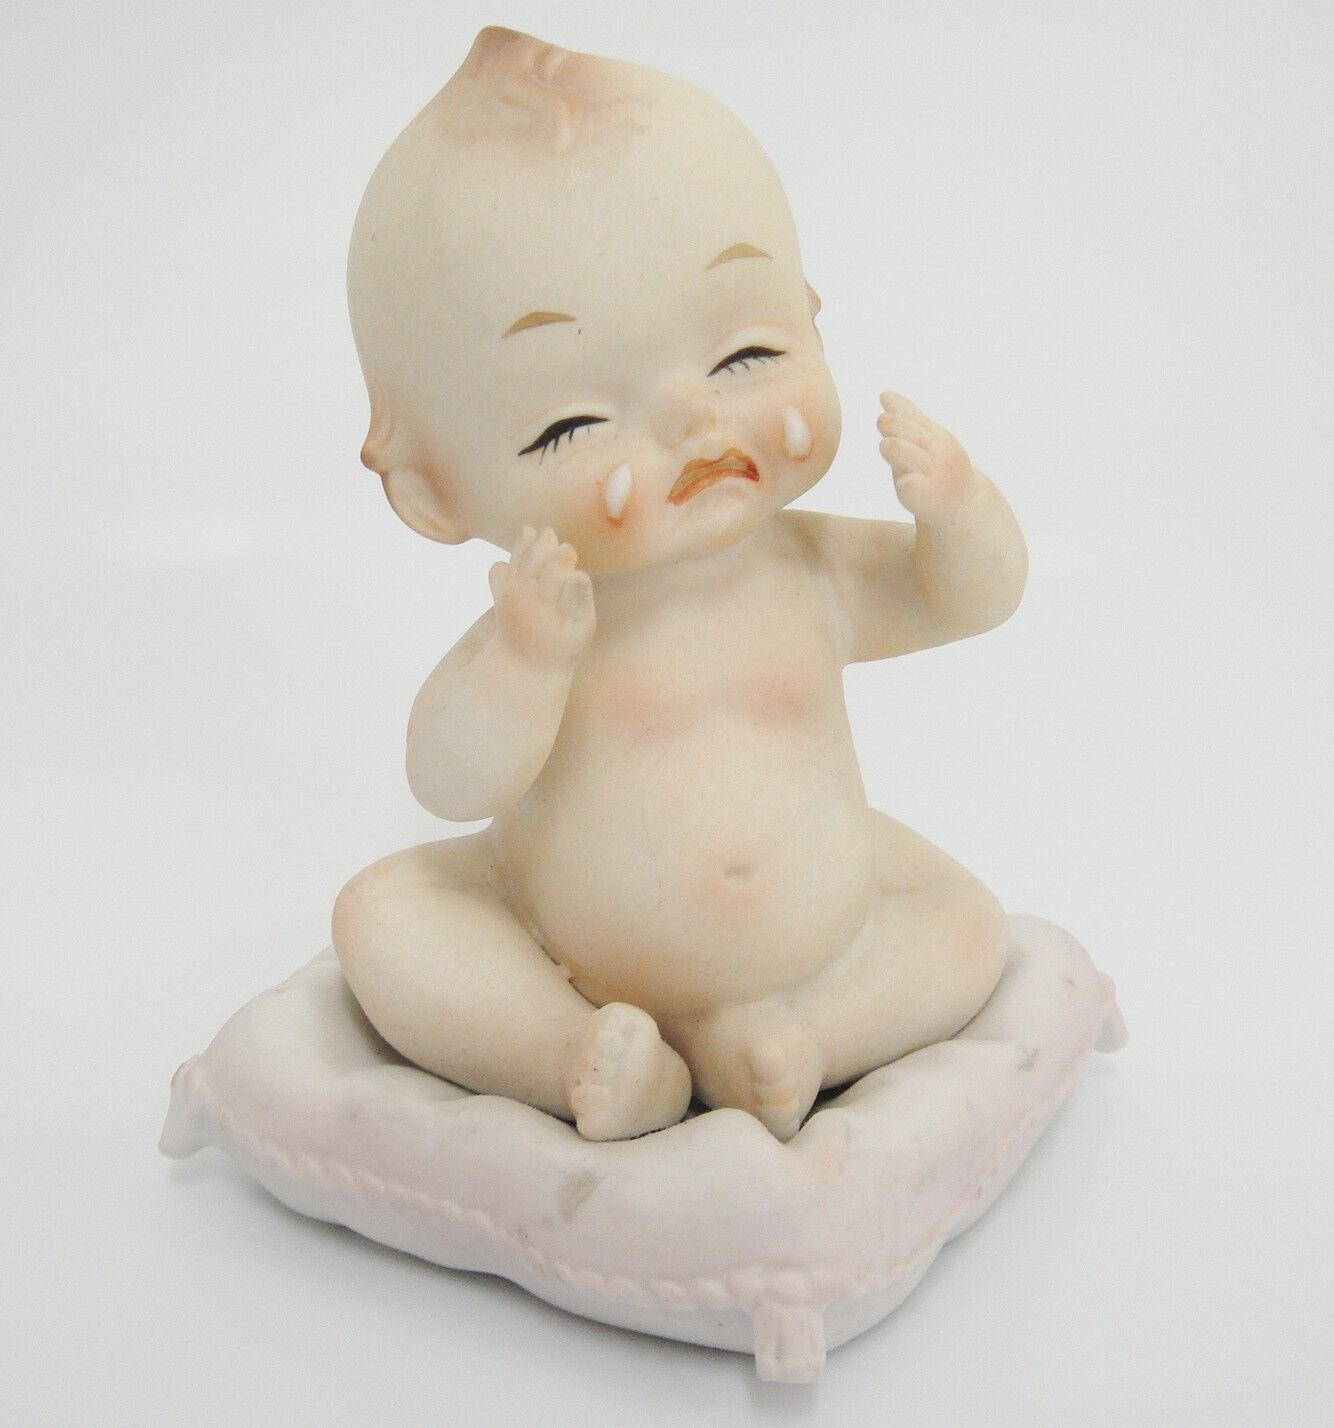 """Lego Japan Crying Baby Figurine Tiny Wings on Back Sitting on Pillow Bisque 4"""""""